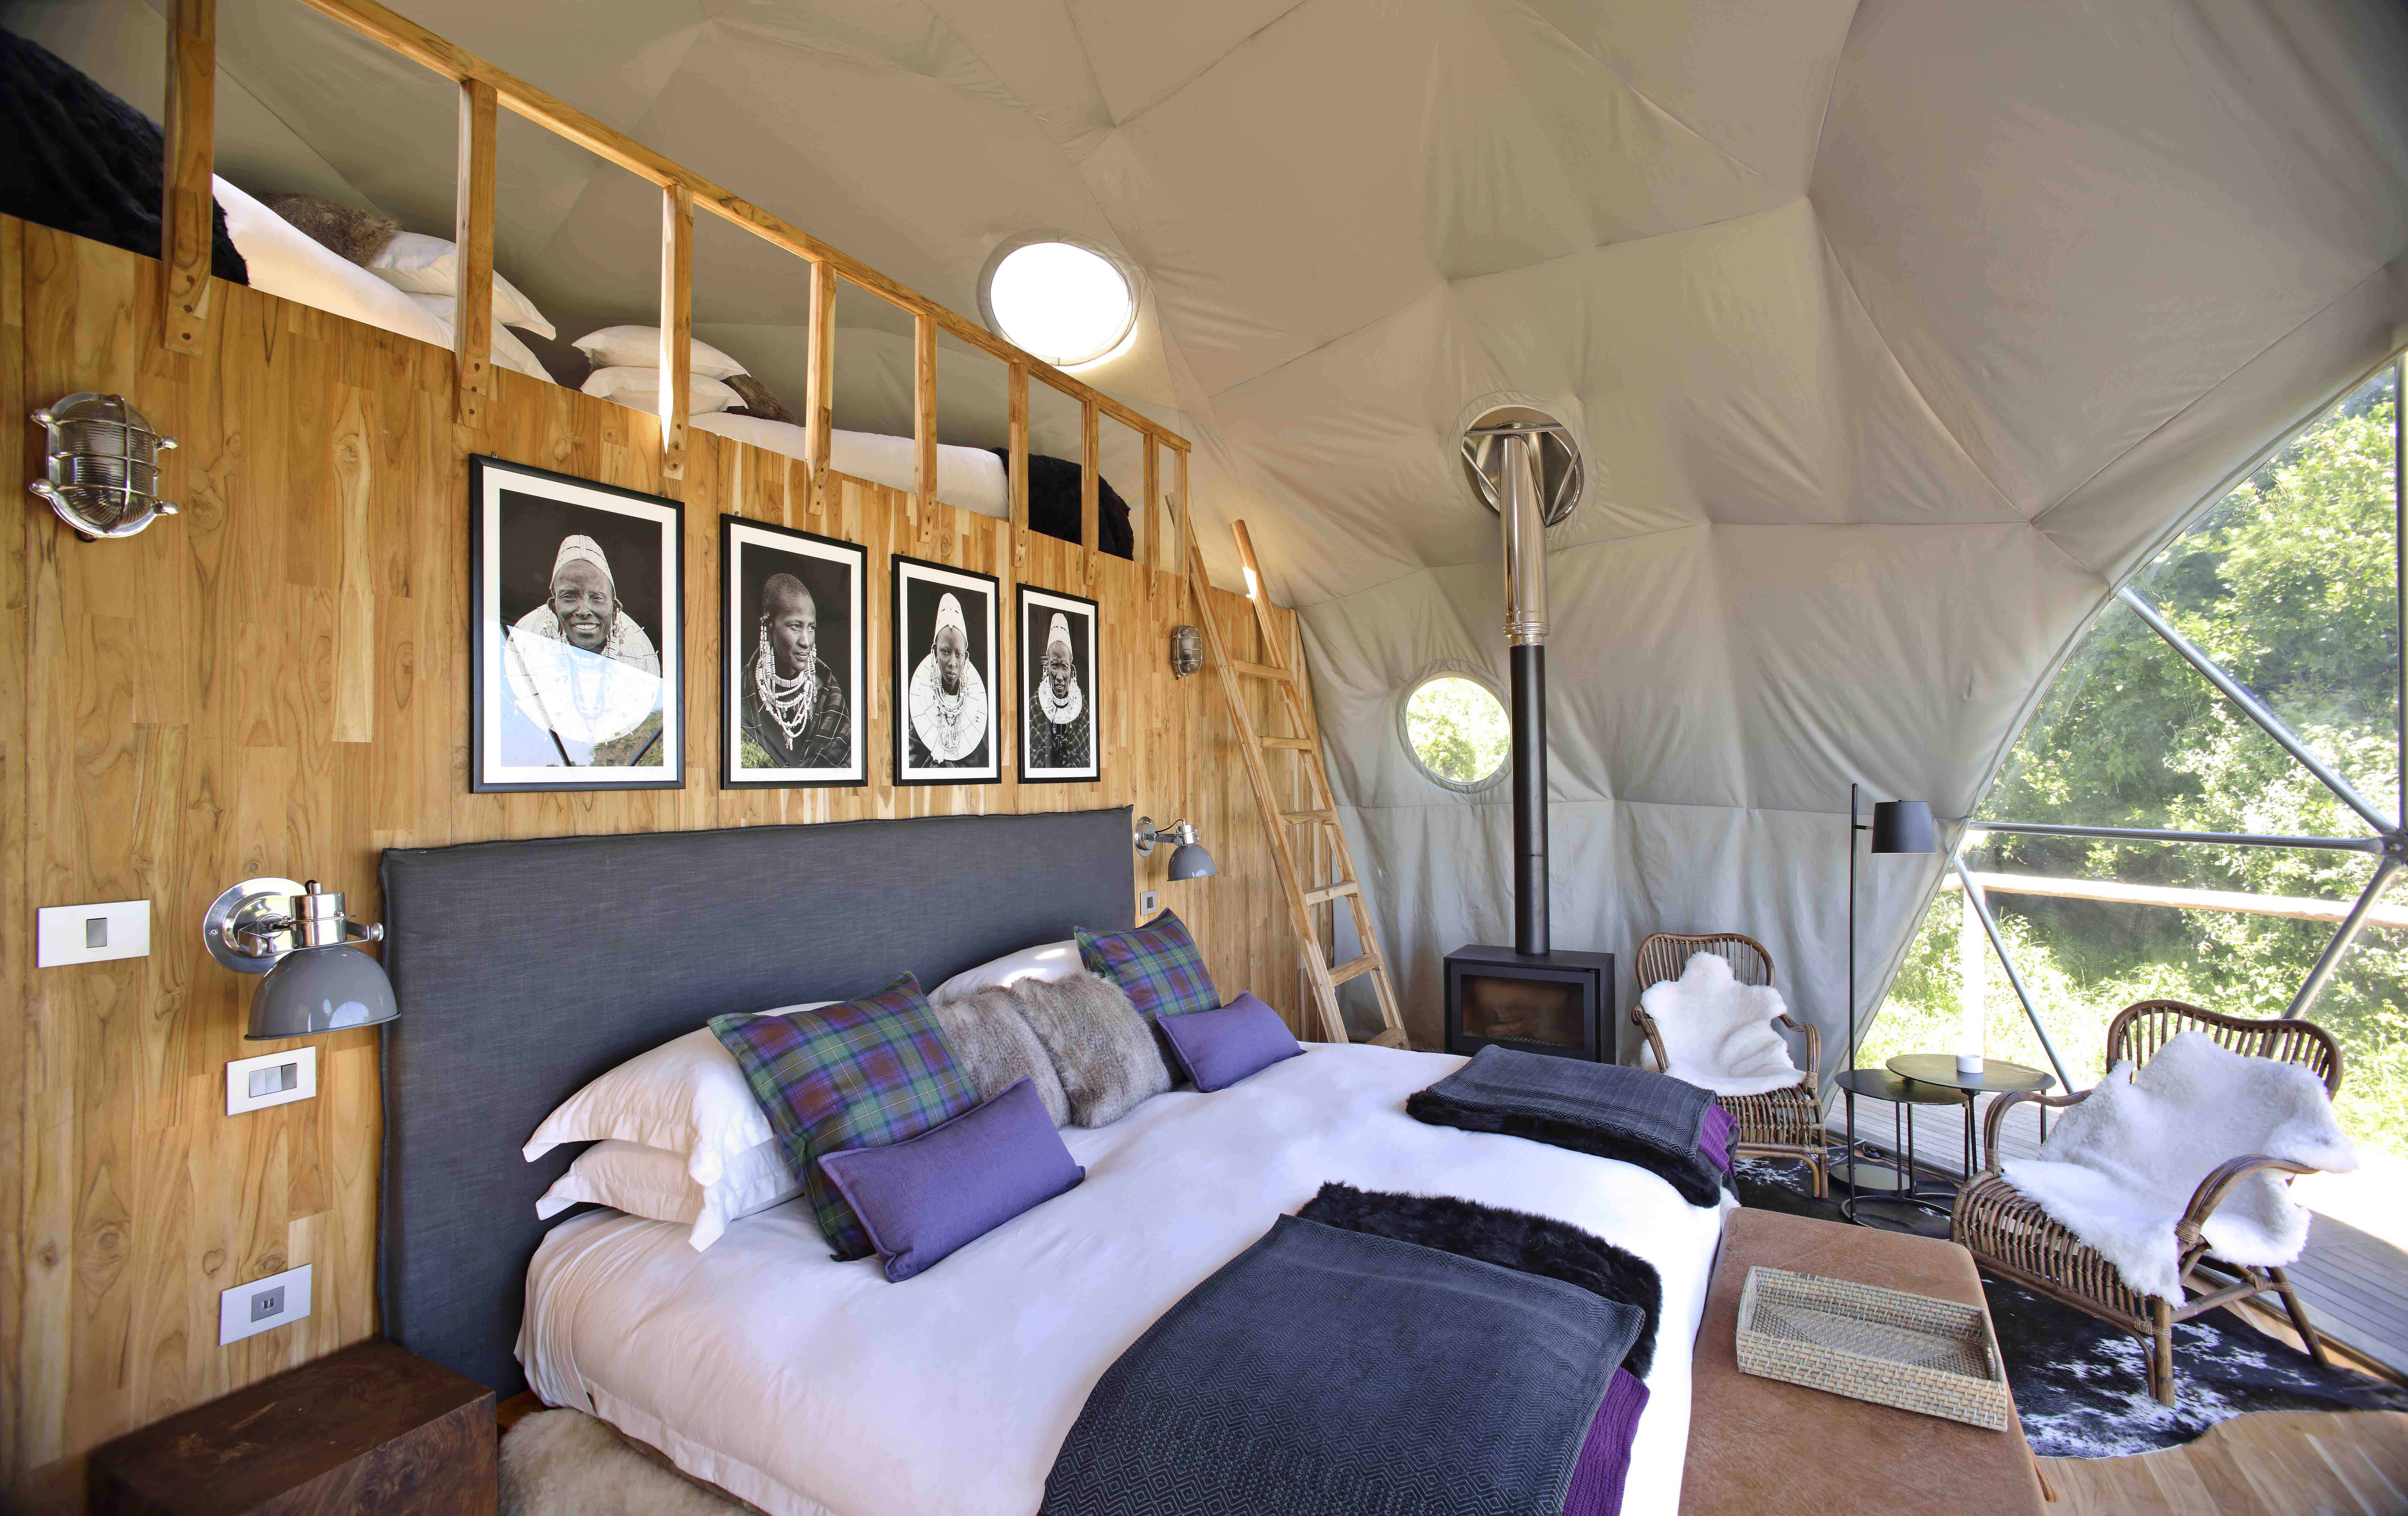 Pacific Domes Europe – Pure Portugal on 5 bedroom log home plans, dome roof plans, ai dome plans, dome home building materials, dome homes foam concrete, dome home interiors, luxury dome home plans, dome home plans 5-bedroom, dome home kitchens, house plans, dome home kits, dome home connectors, dome home communities, alpha dome homes plans, geodesic dome home plans, dome home architecture, dome home community, dome home windows, round home plans,